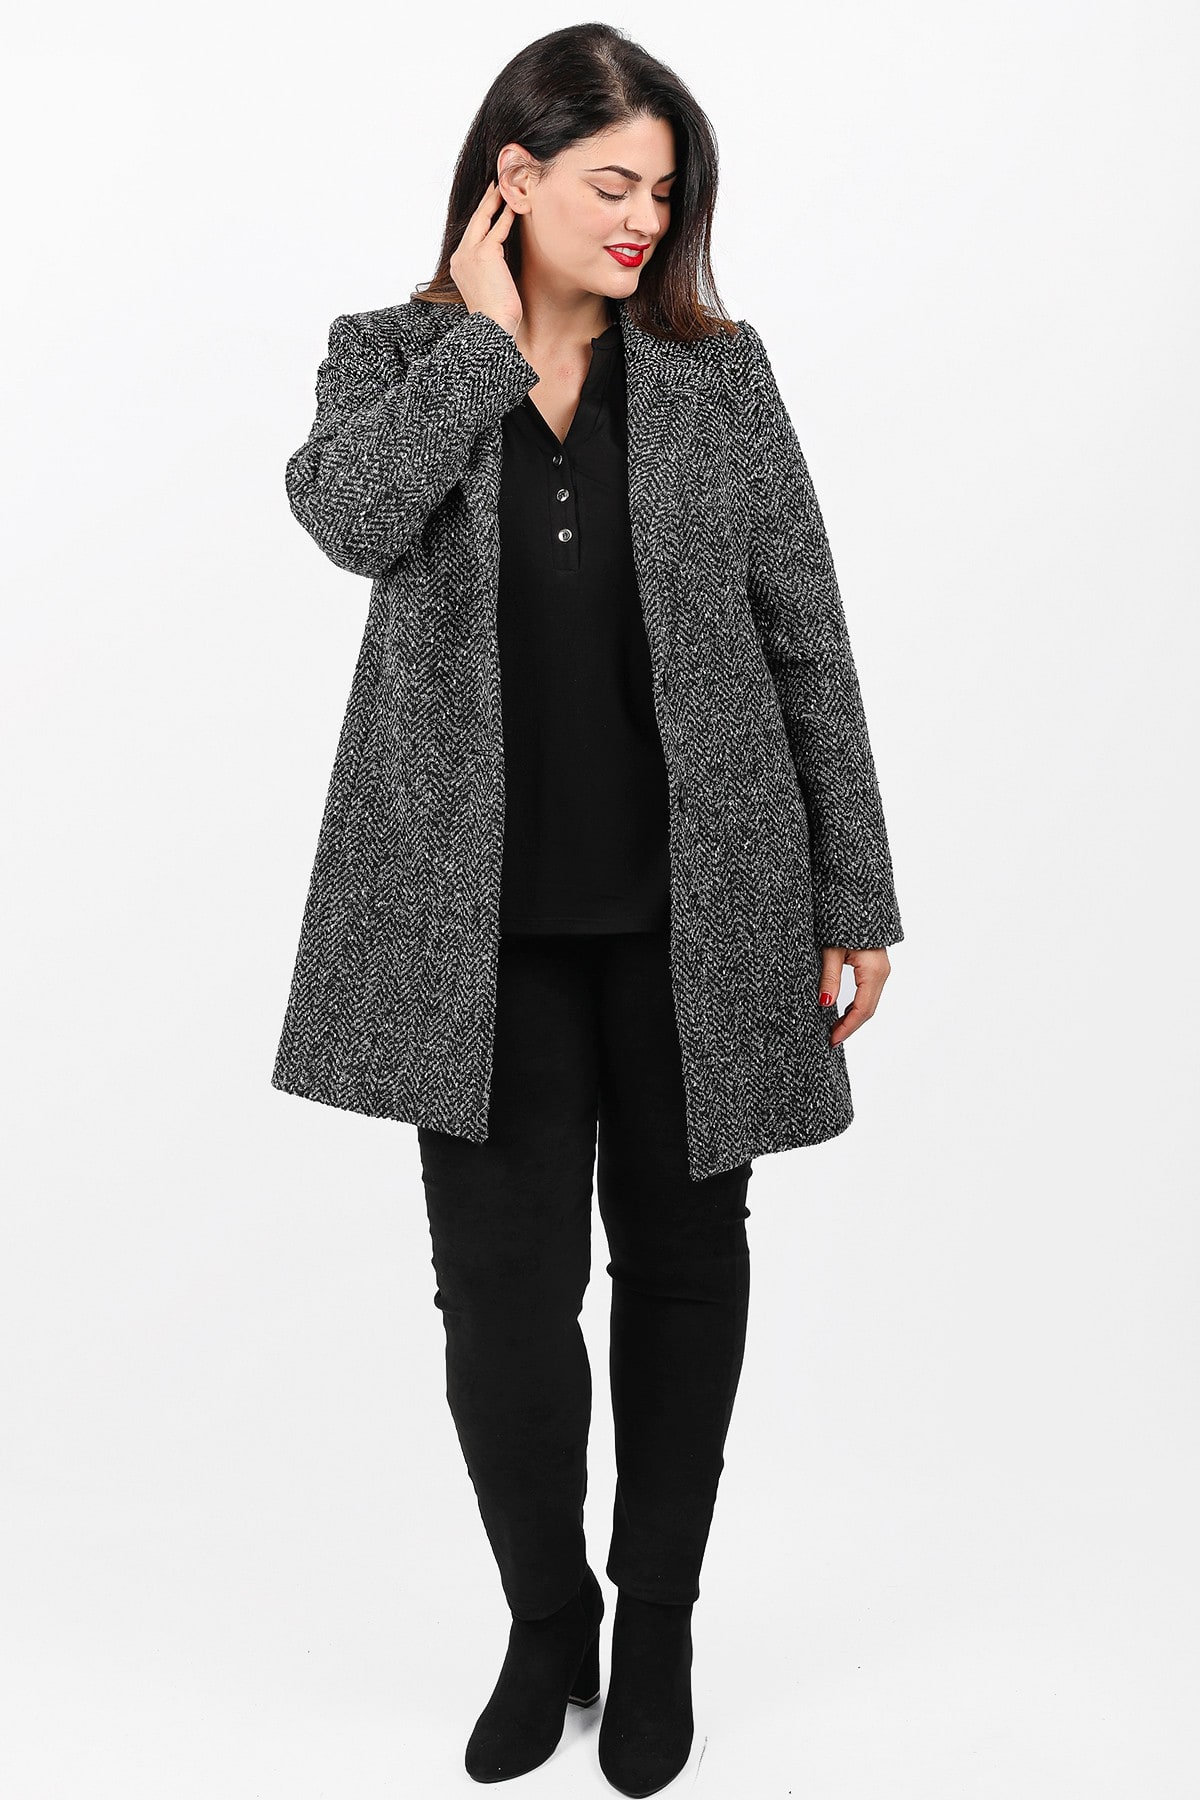 Midi coat in herringbone pattern